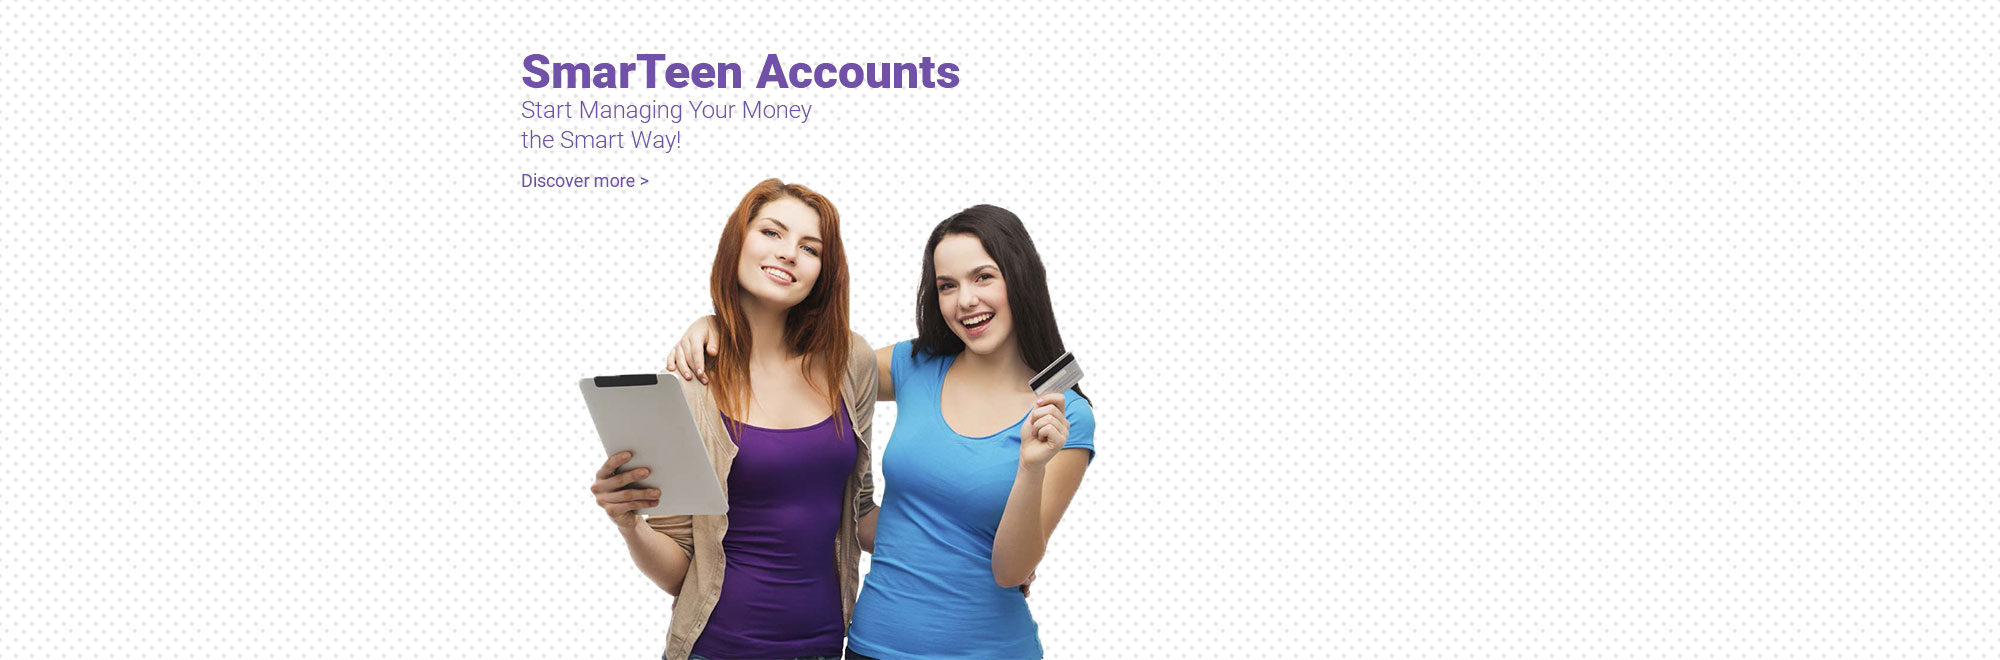 SmarTeen Accounts